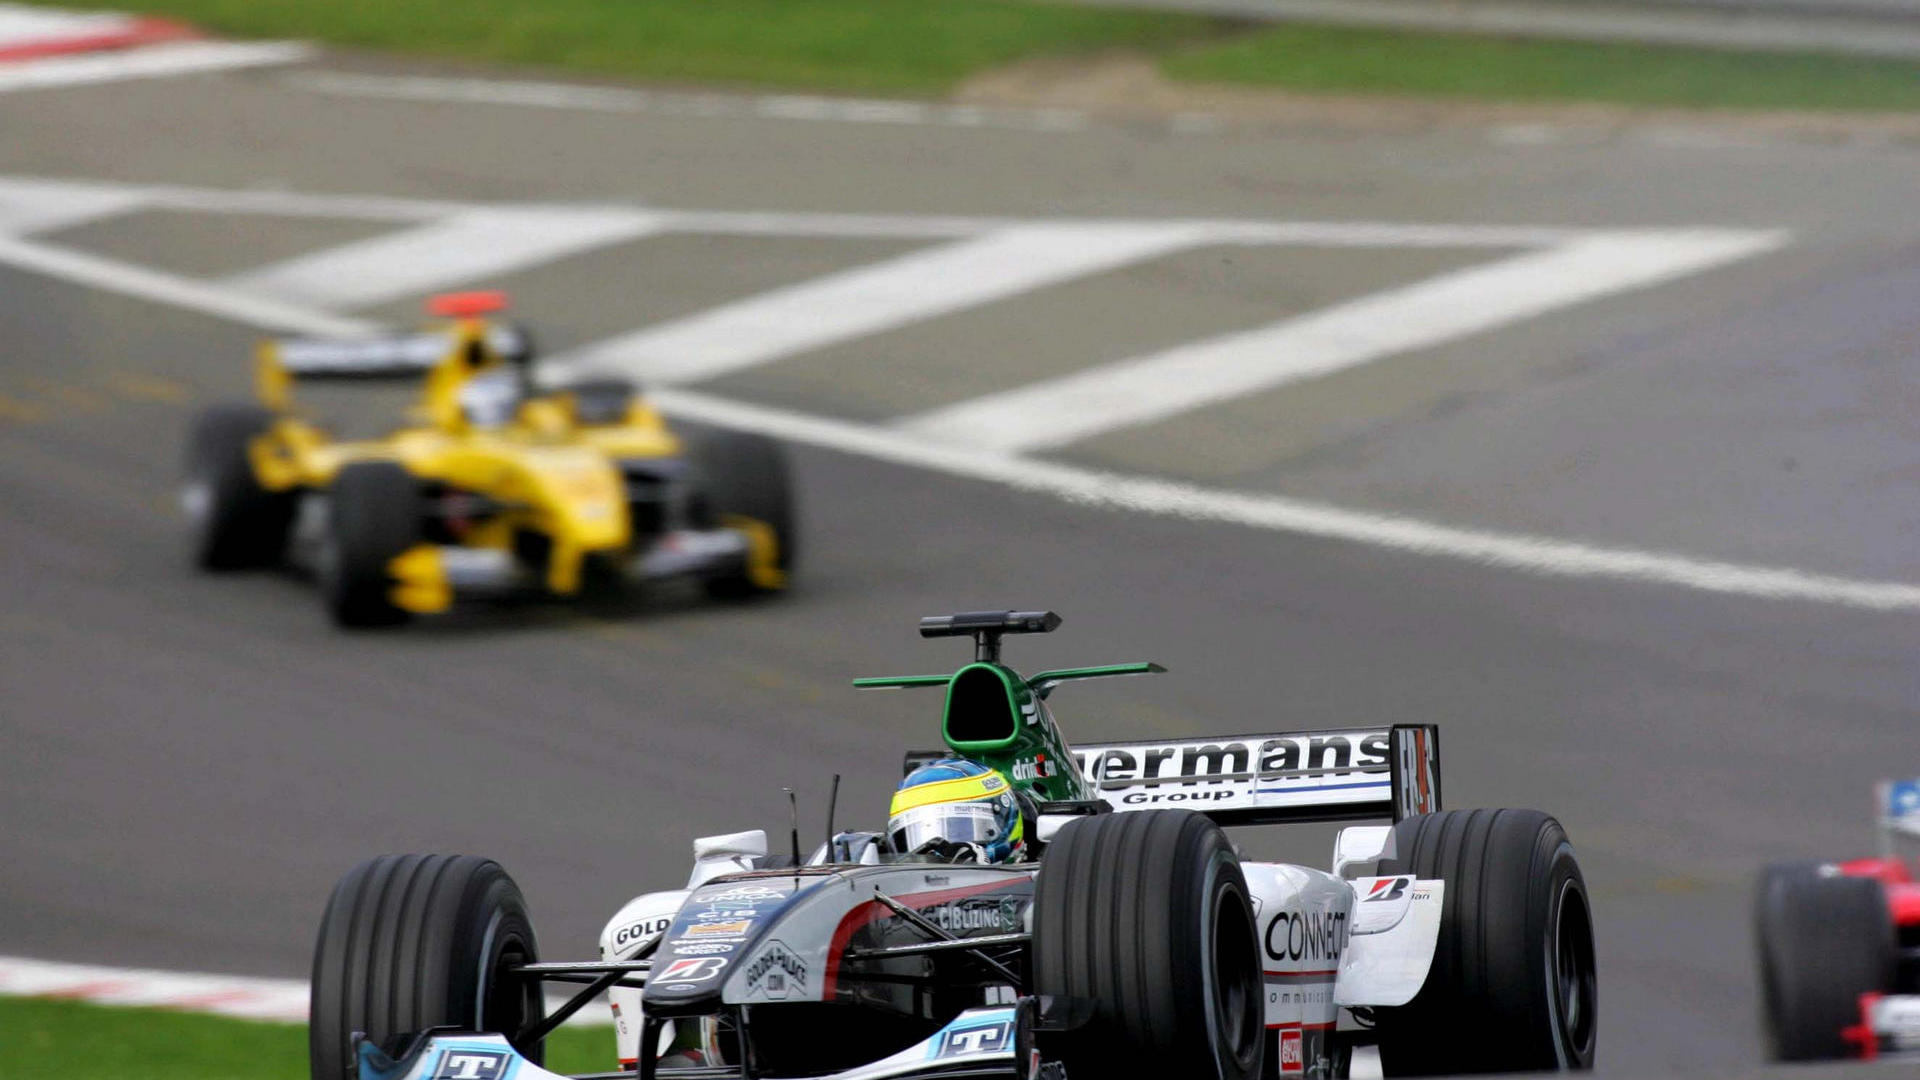 Hd Wallpapers 2004 Formula 1 Grand Prix Of Belgium F1